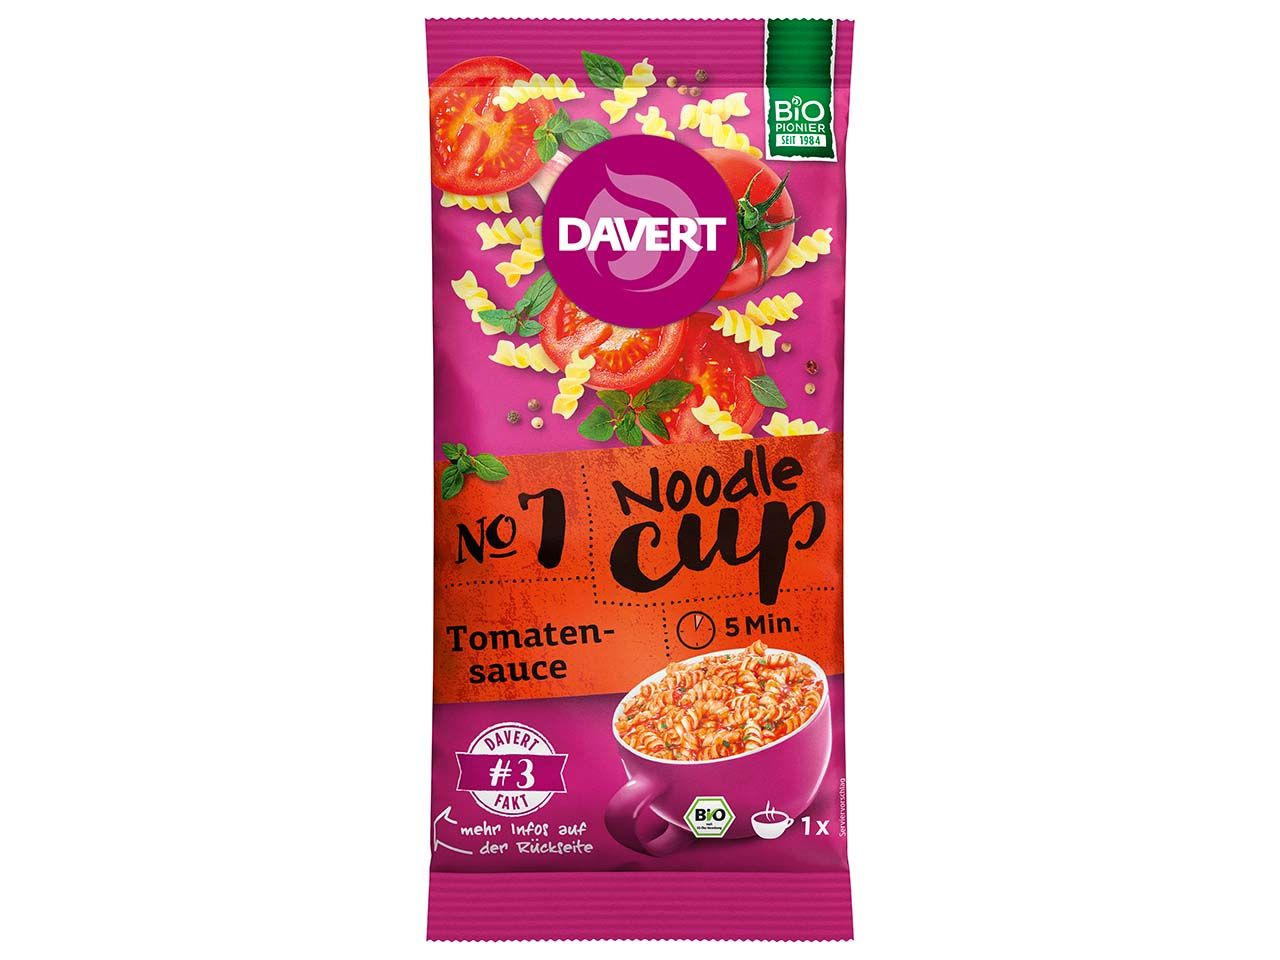 Davert Bio-Noodle-Cup Tomatensauce, 67 g 131064600